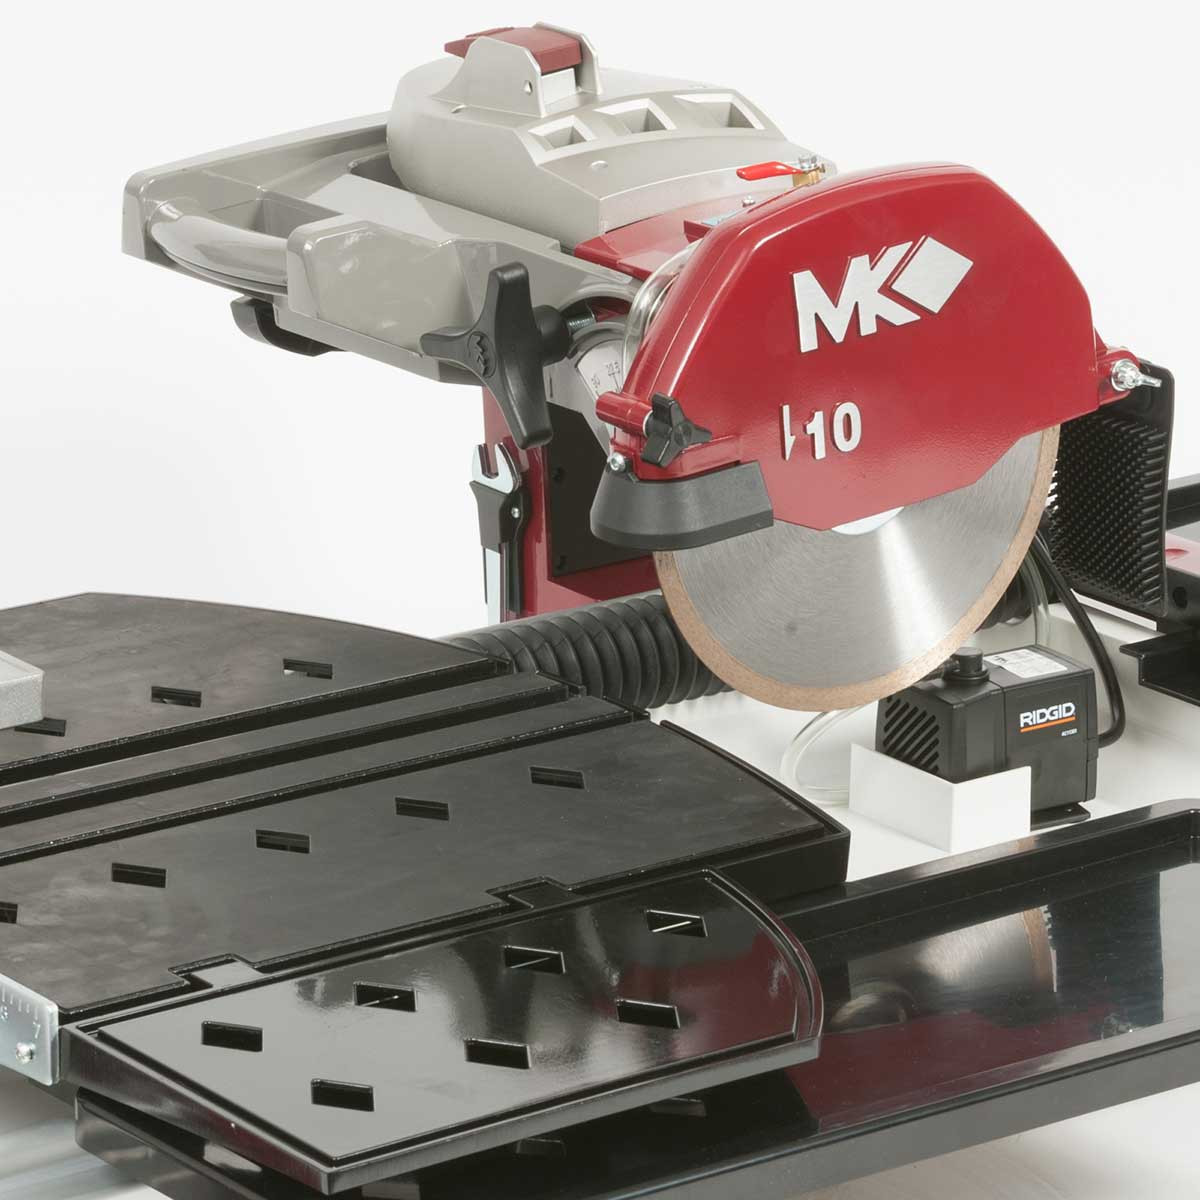 MK TX-4 Wet Tile Saw cutting head